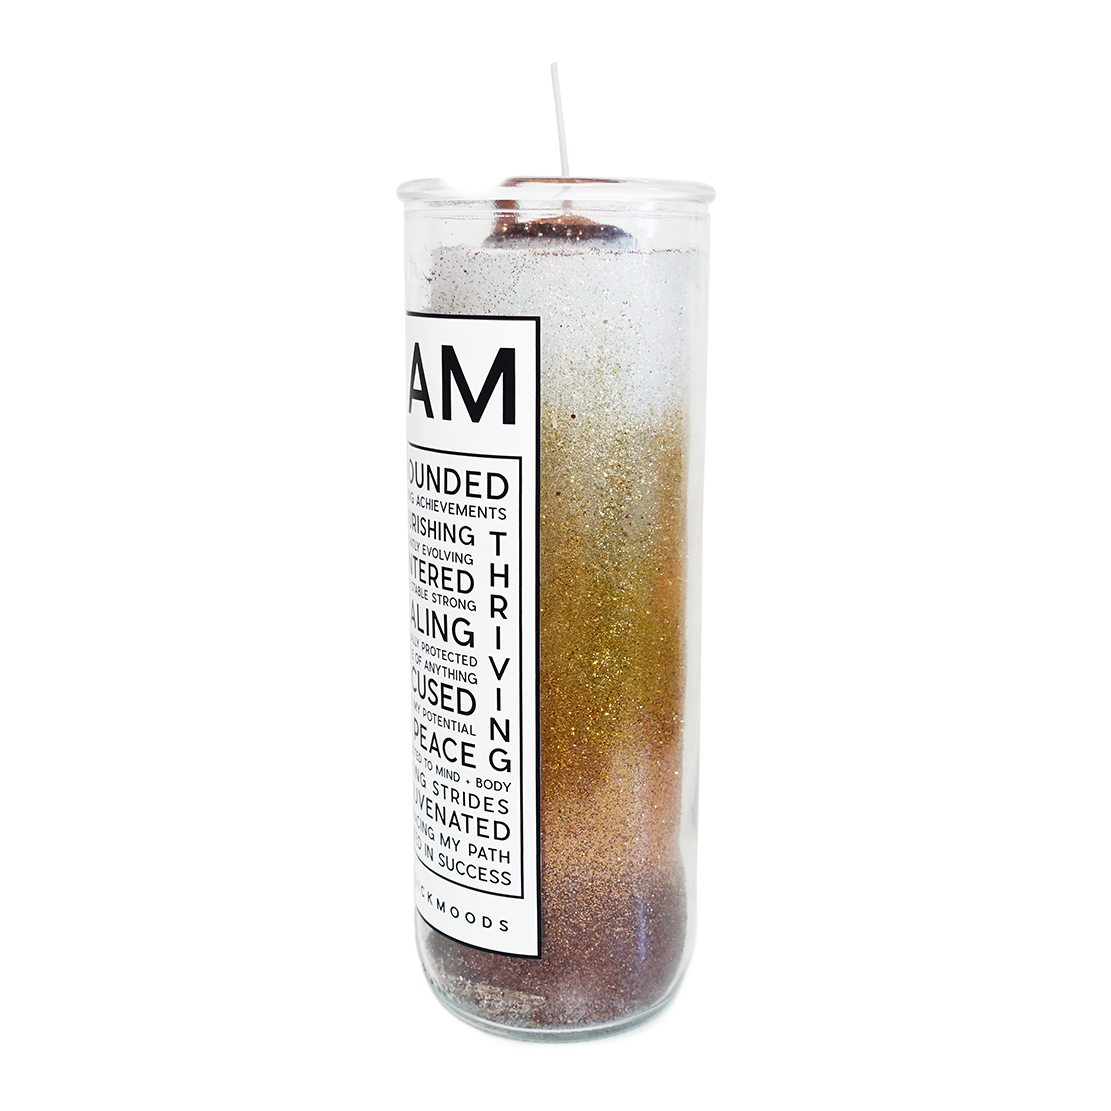 I Am Grounded 7-Day Meditation Candle - PREORDER - Ships by 12/15